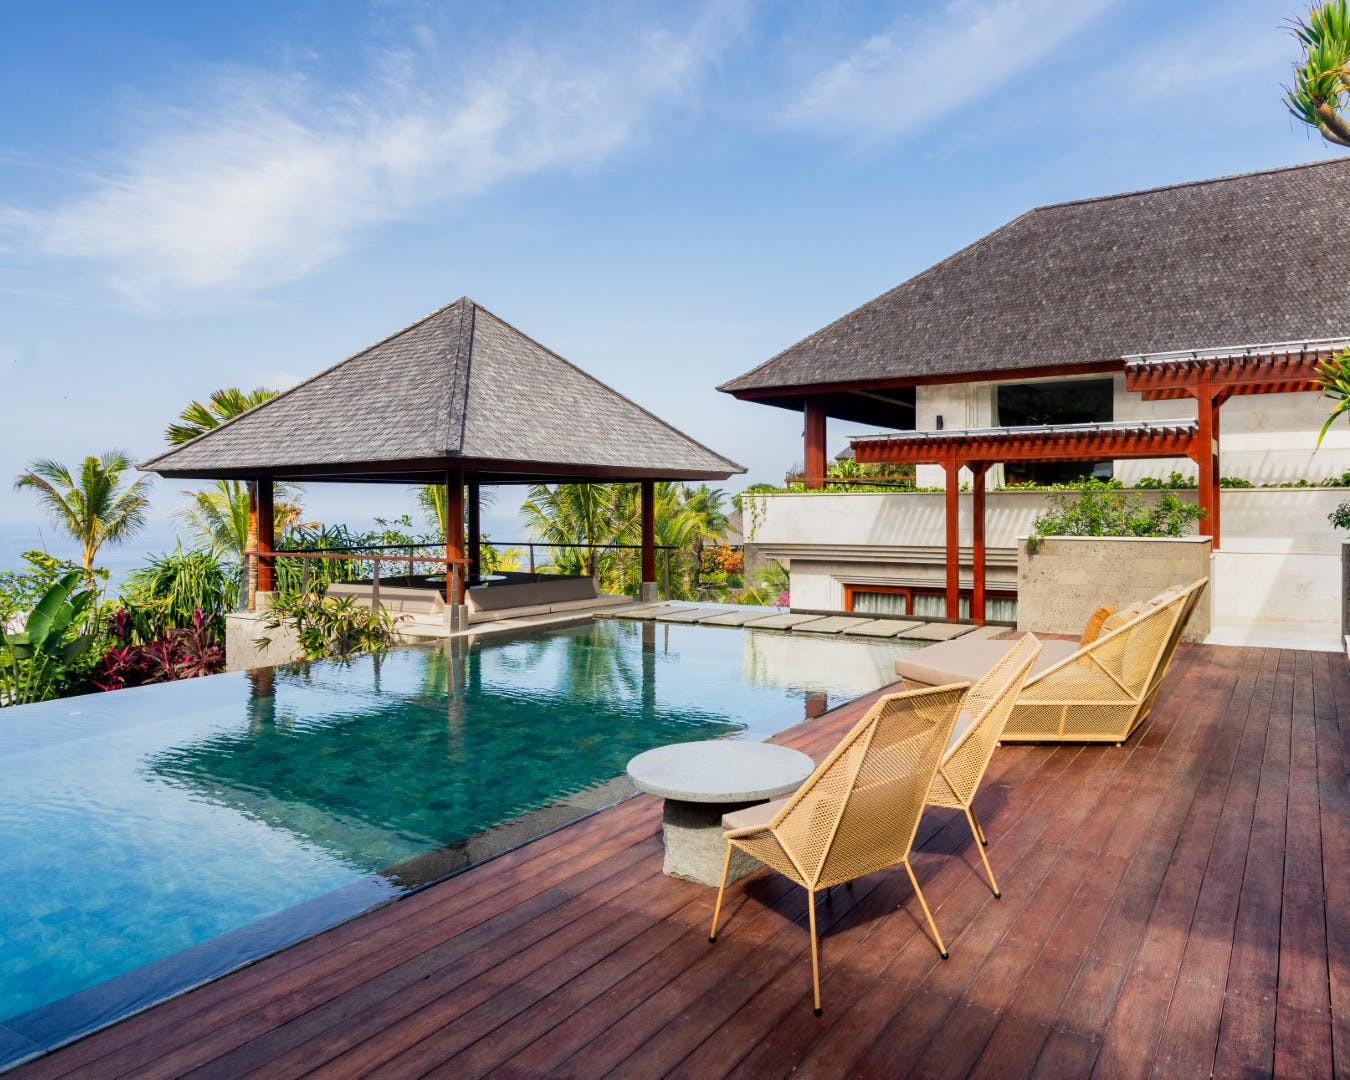 The Ocean at The edge Luxury Villa Resort, Uluwatu Bali